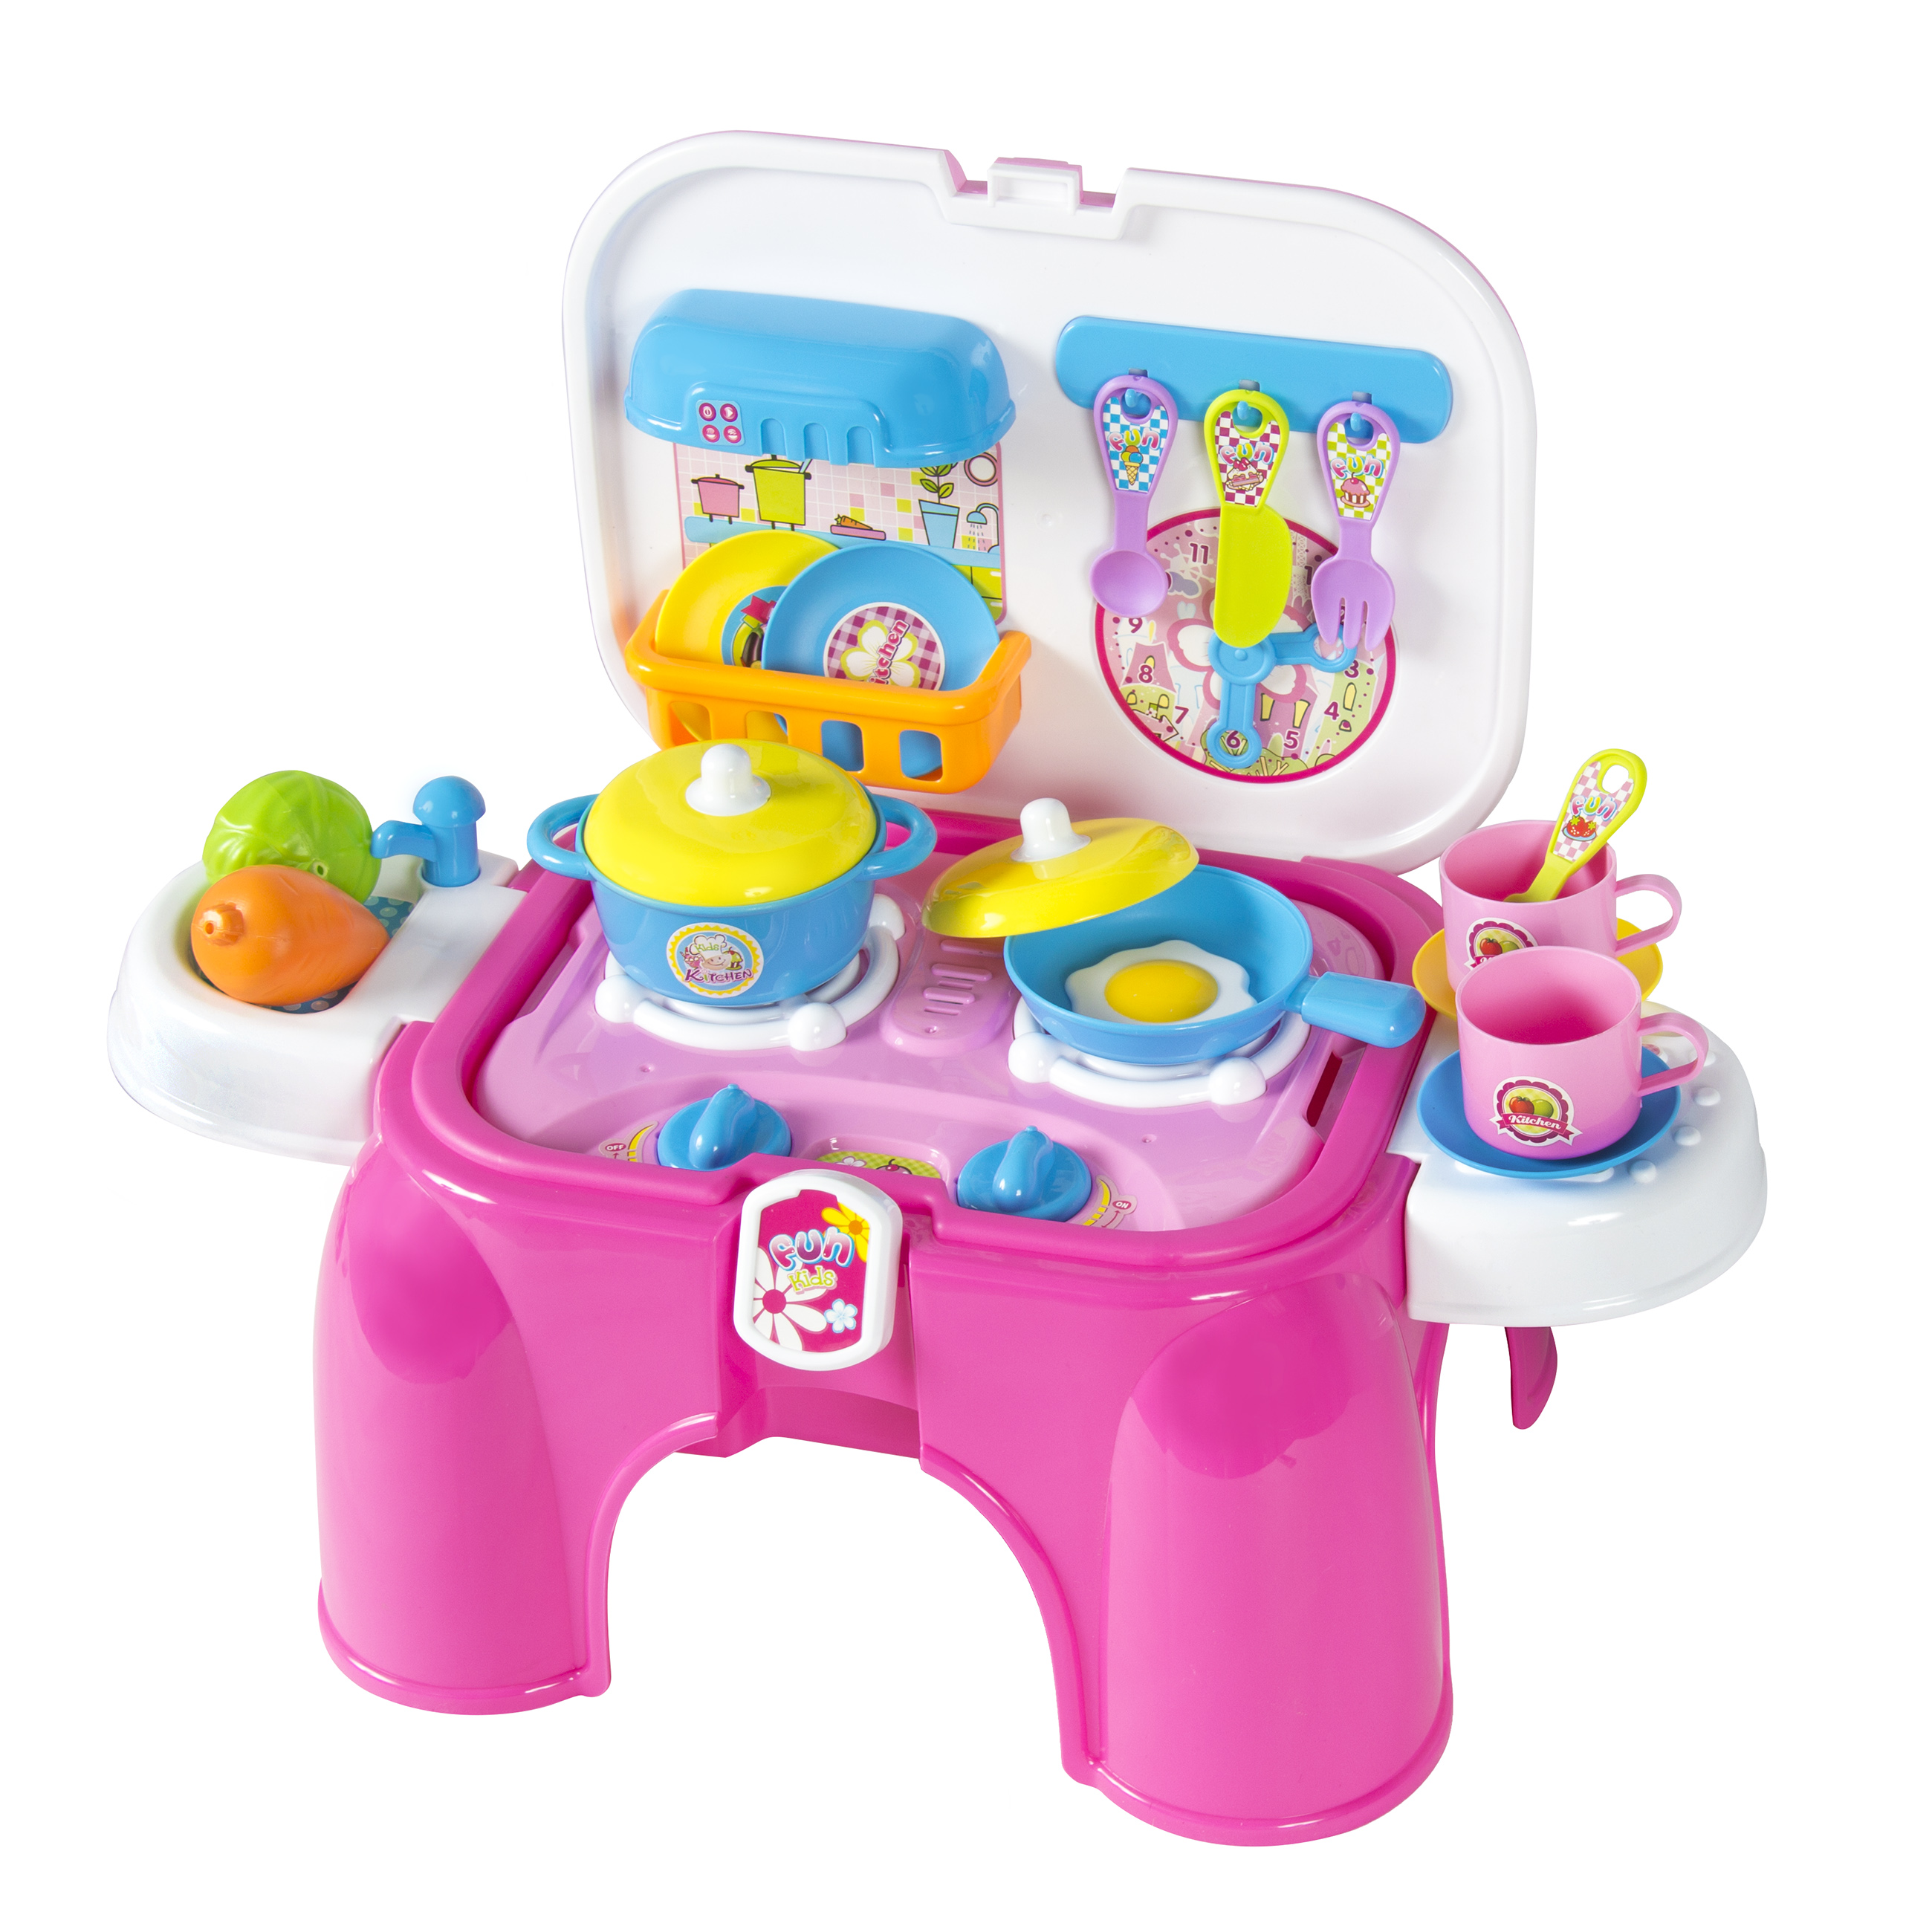 Best Choice Products Kids Toy Pretend Kitchen Cooking Playset with Lights & Sounds Great Gift